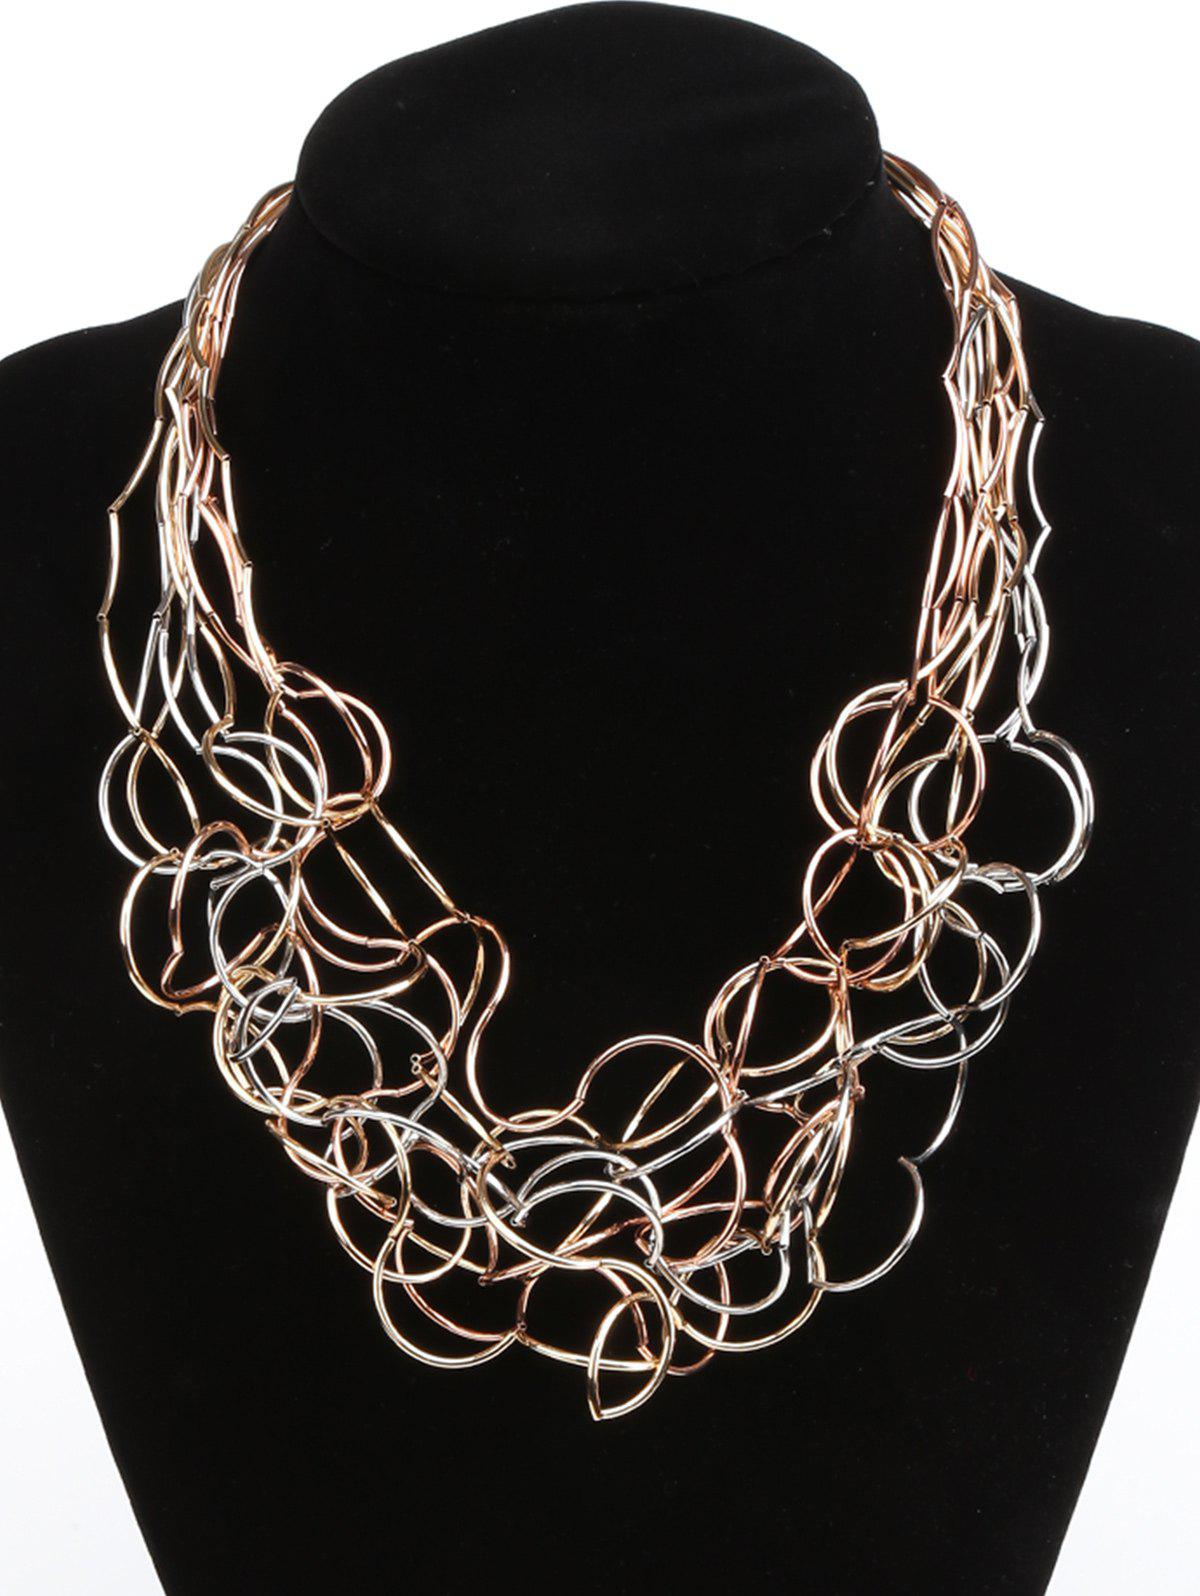 Store Iron Wire Multi Layered Irregular Necklace